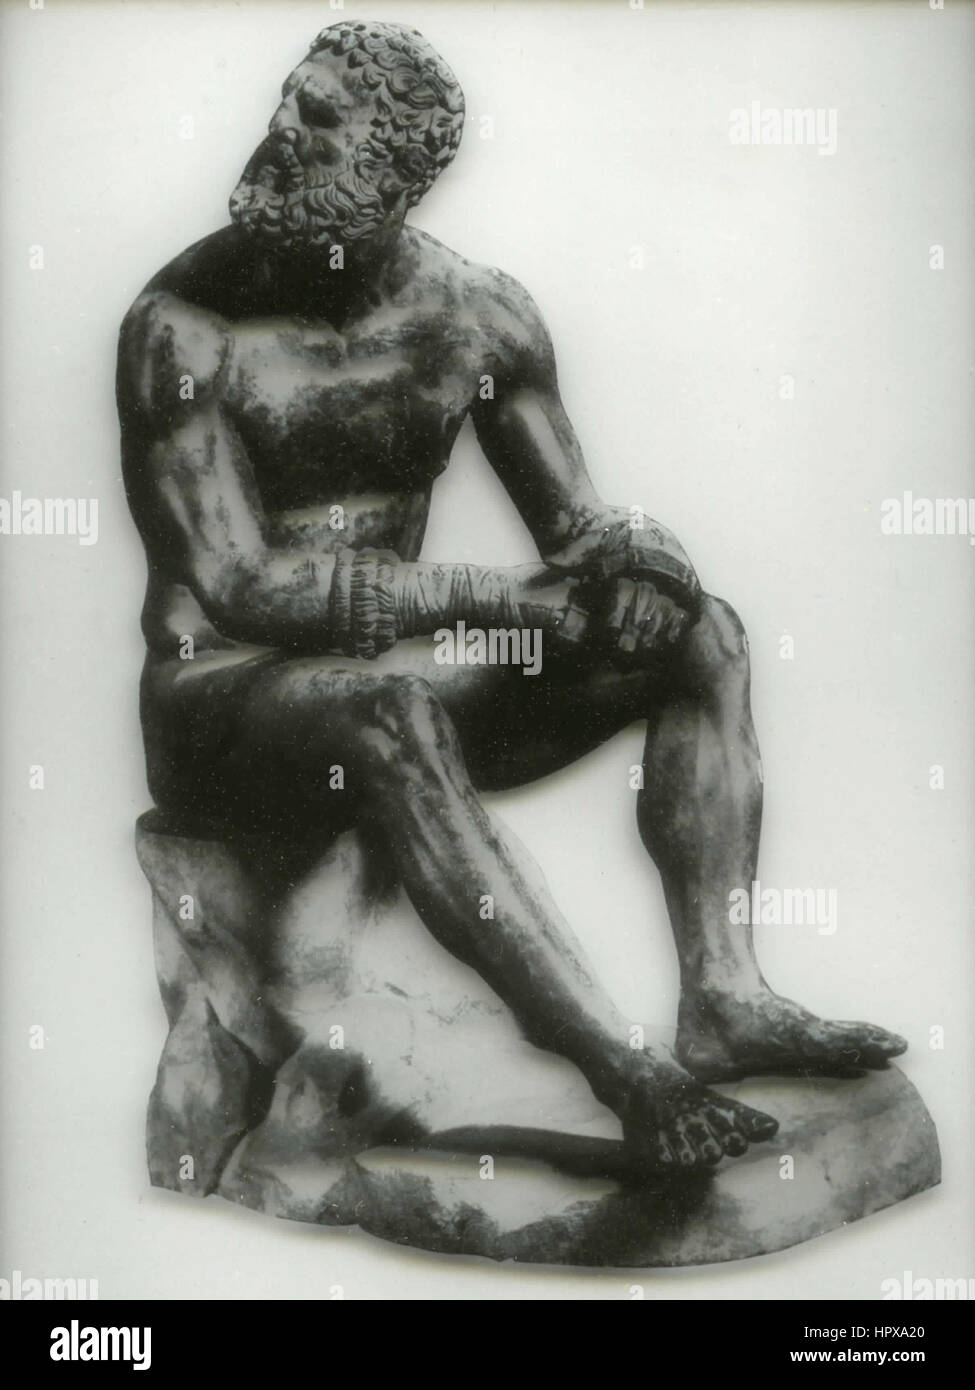 Bronze statue of a boxer, Term Museum, Rome, Italy - Stock Image